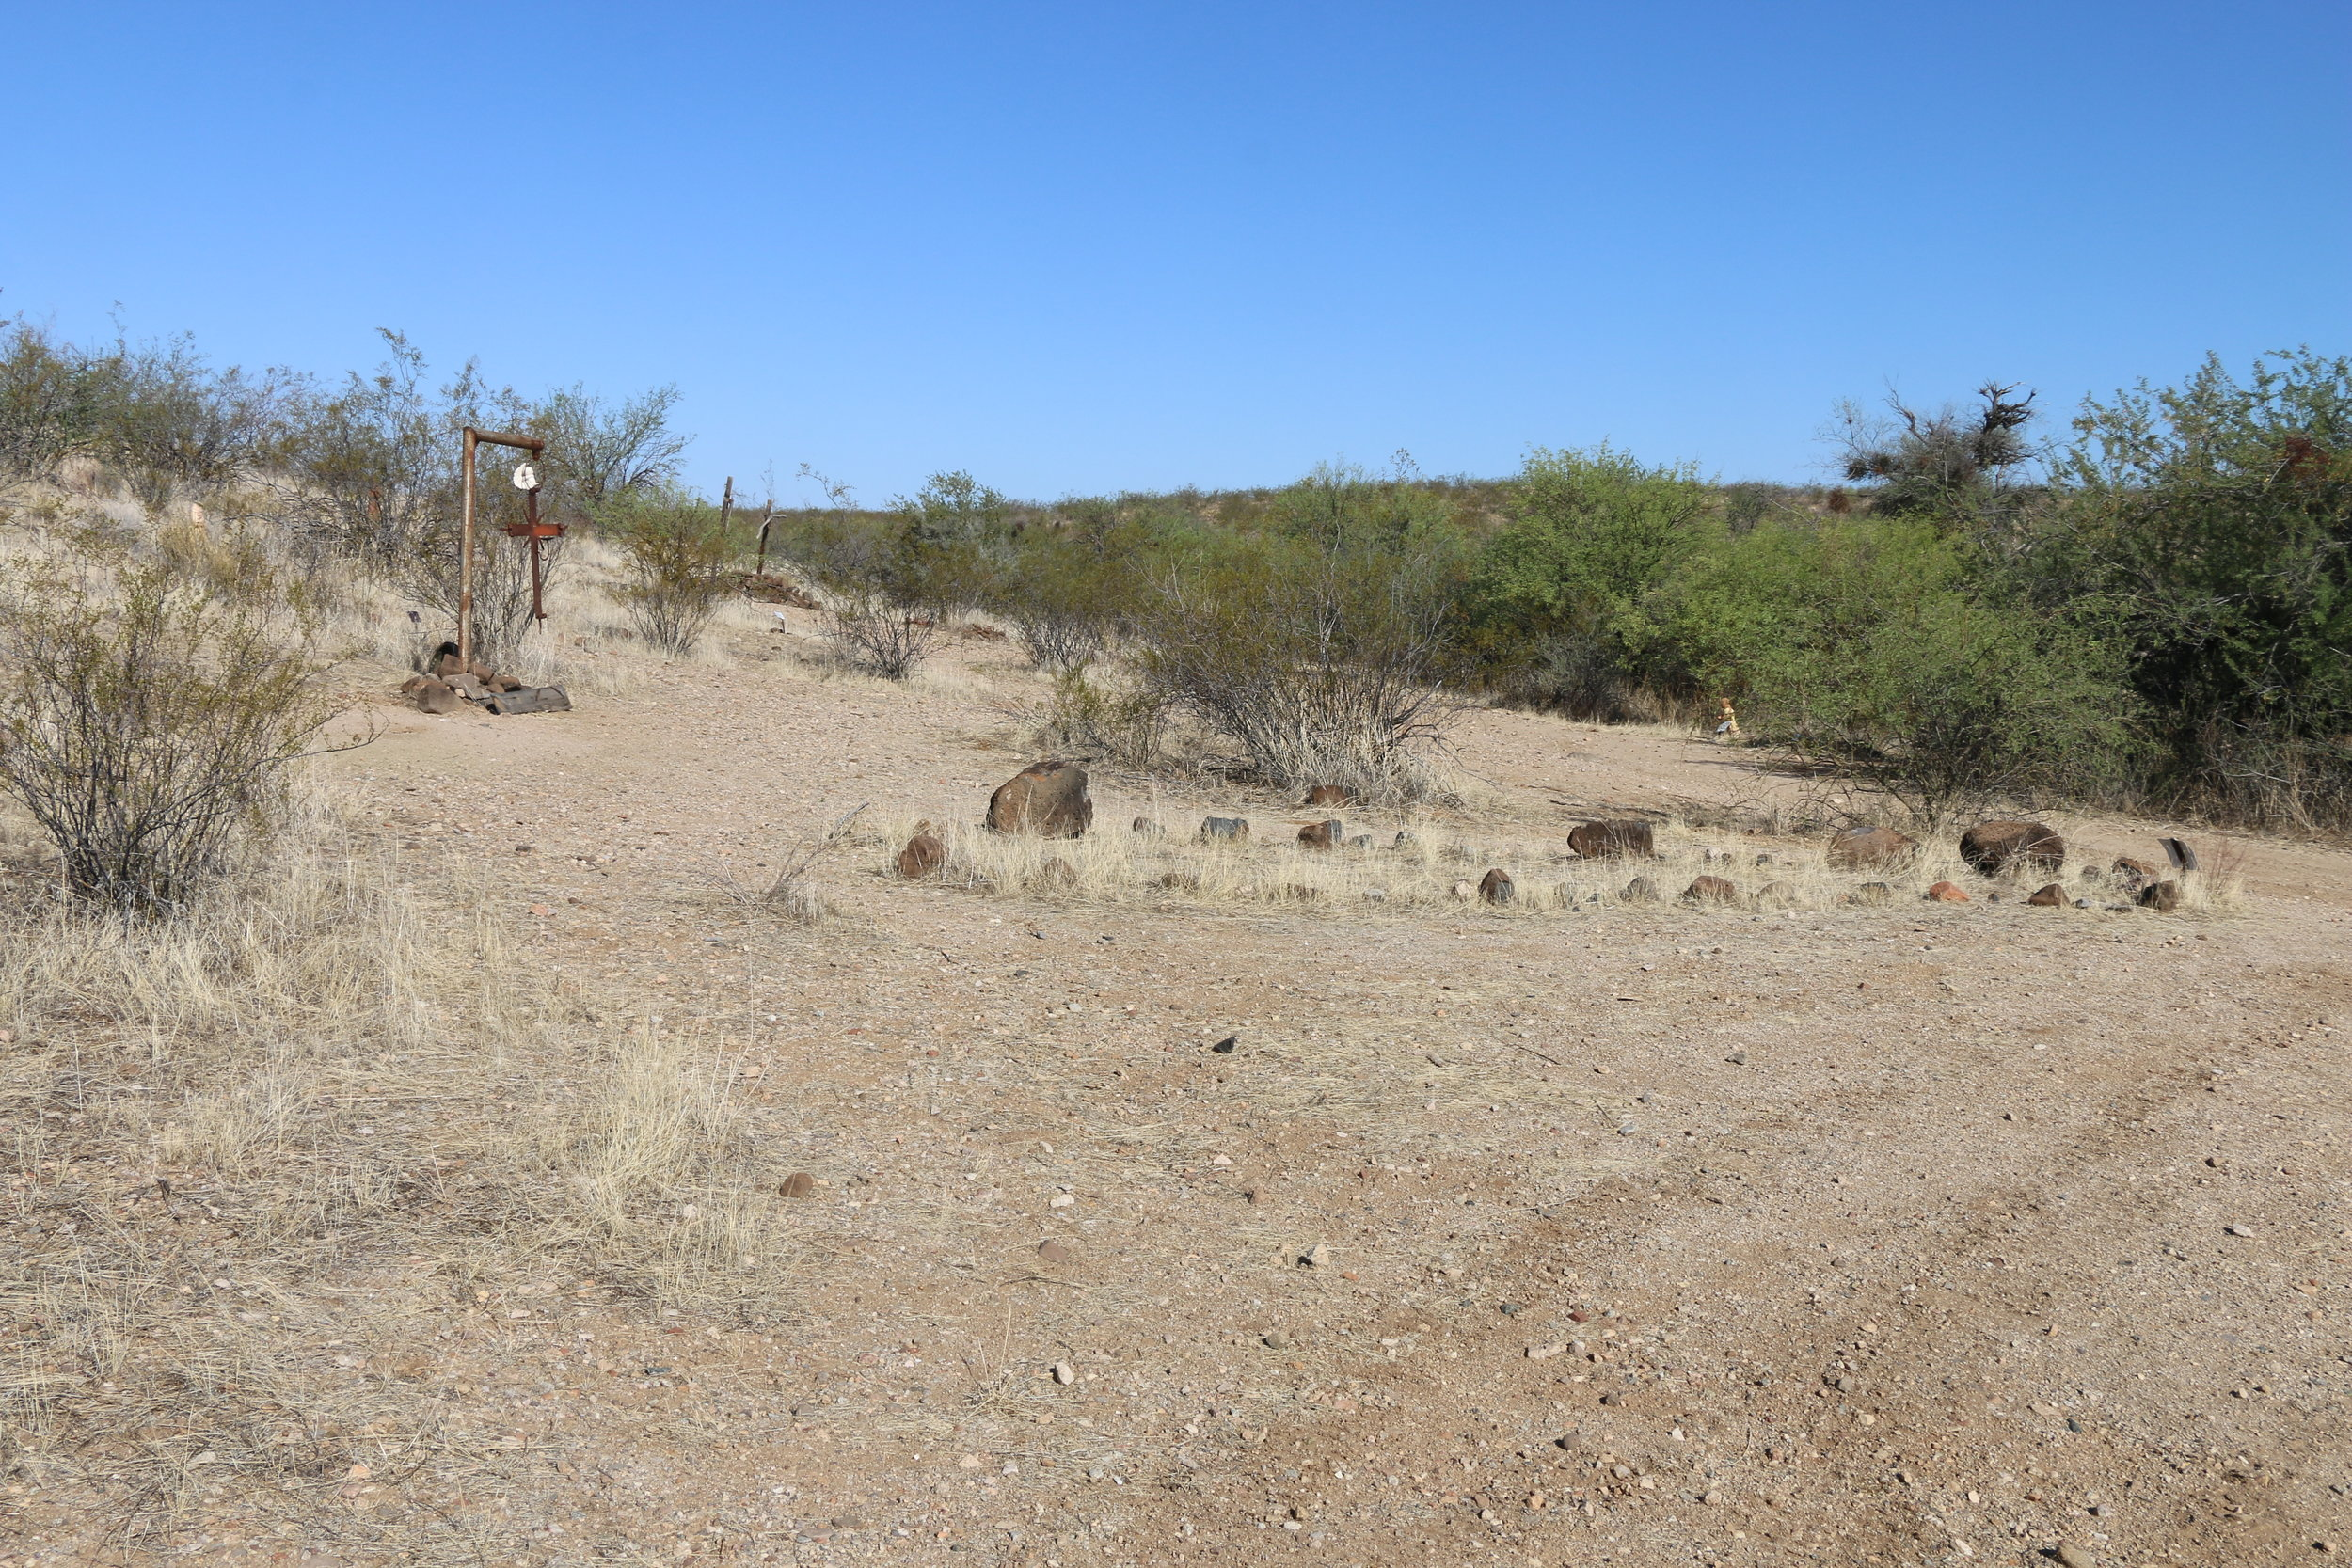 An overview of the massacre site.